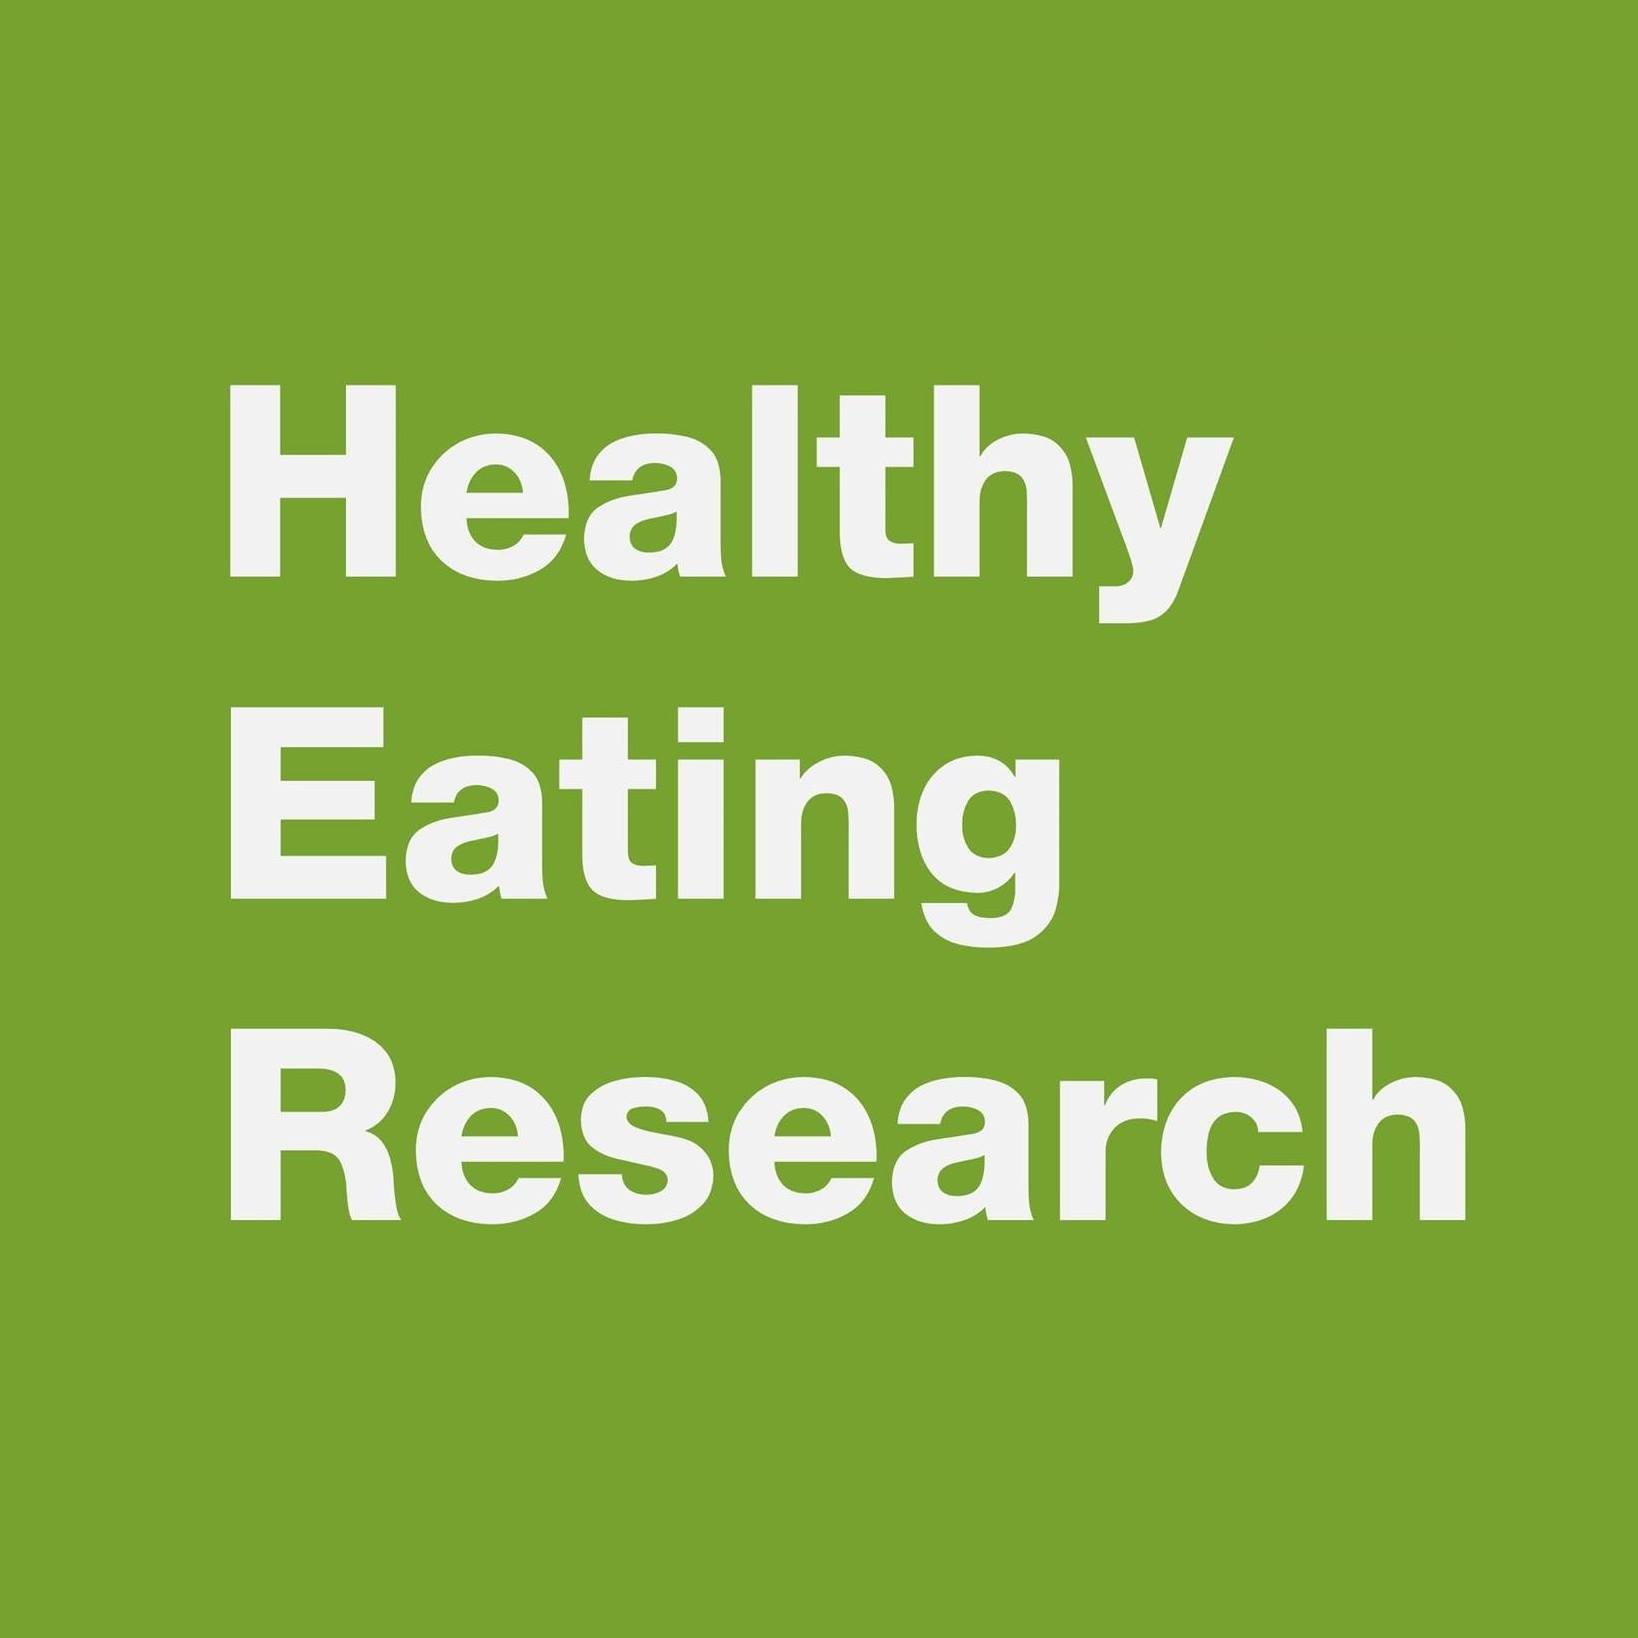 thesis statement for living a healthy lifestyle